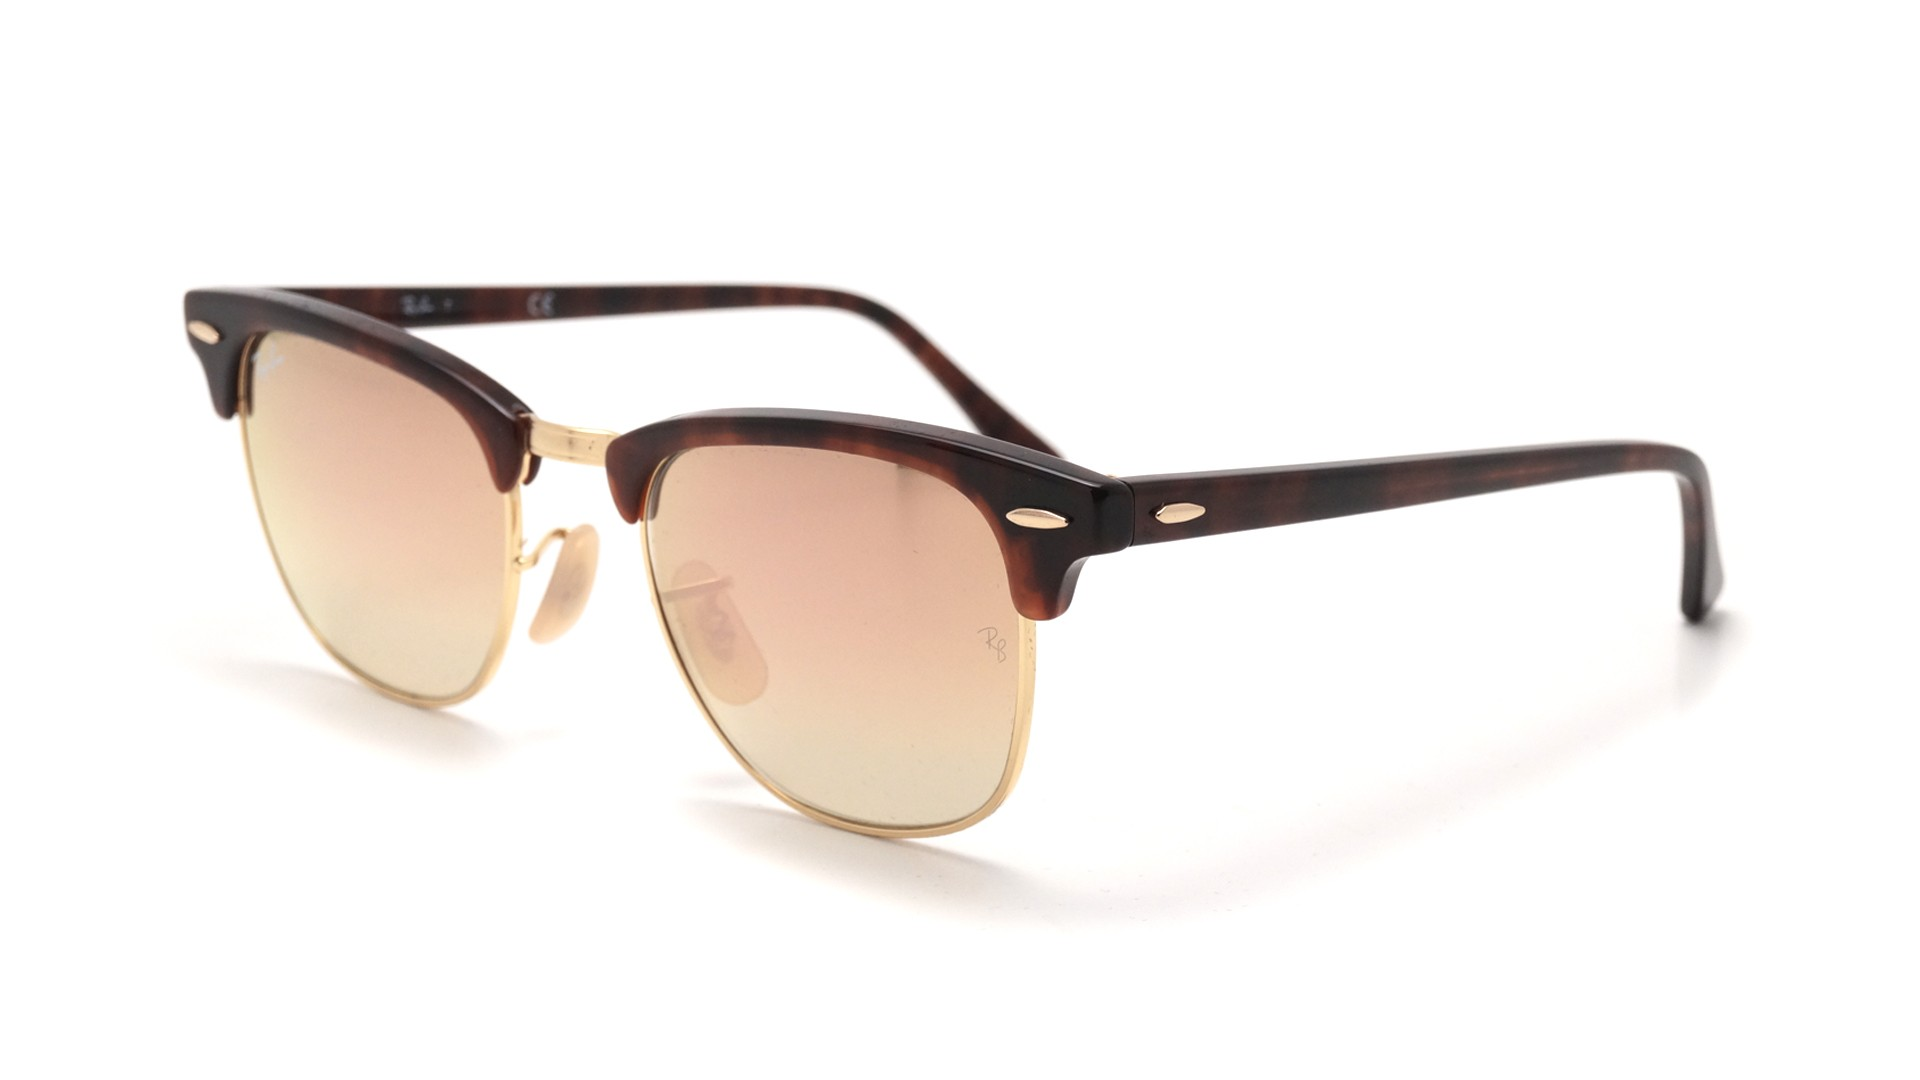 2a8bdb3f34 Sunglasses Ray-Ban Clubmaster Tortoise Flash lenses RB3016 990 7O 49-21  Small Degraded Flash